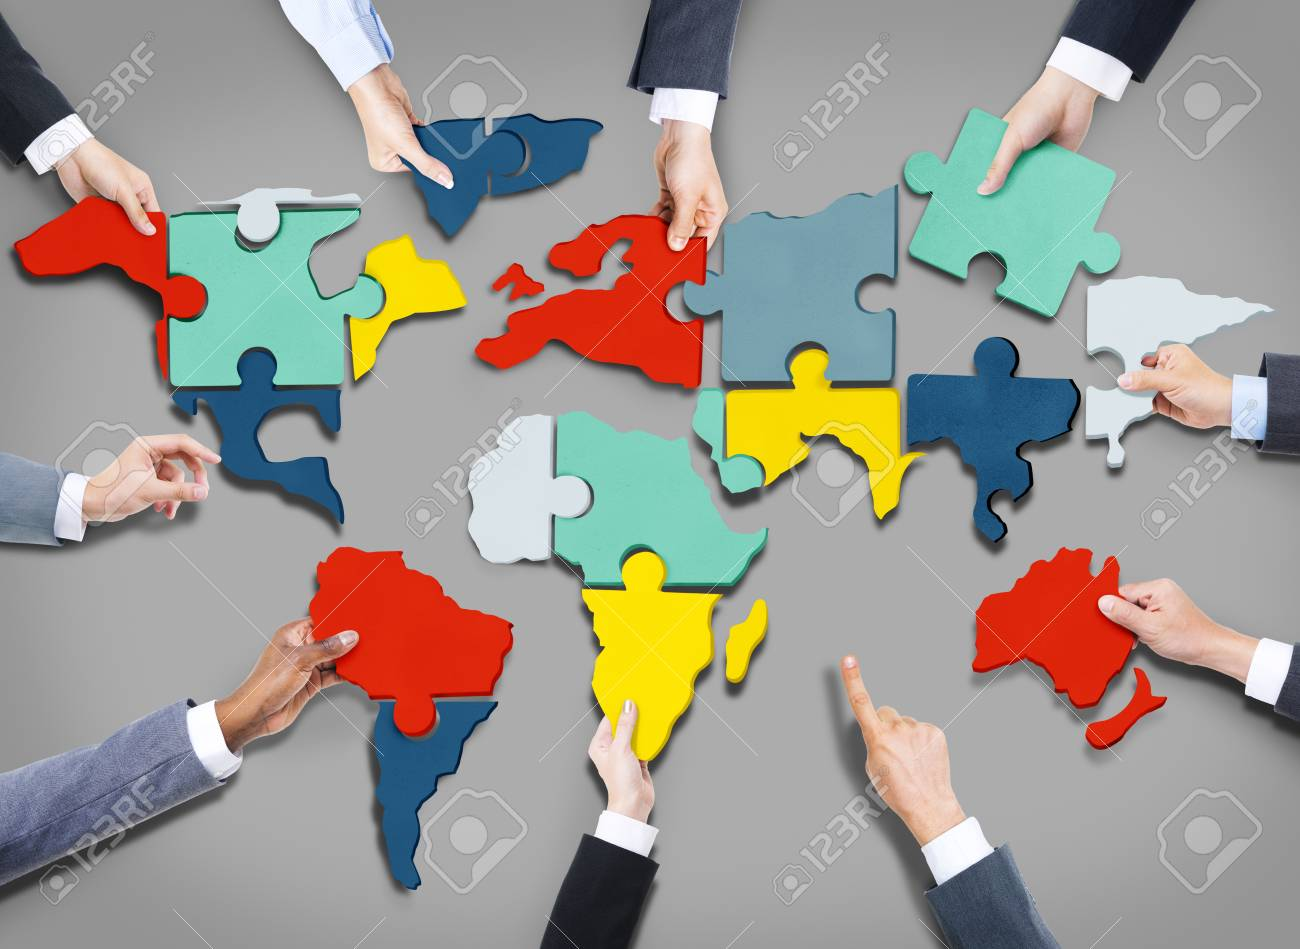 Corporate business team world map jigsaw puzzle concept stock photo corporate business team world map jigsaw puzzle concept stock photo 38482542 gumiabroncs Image collections